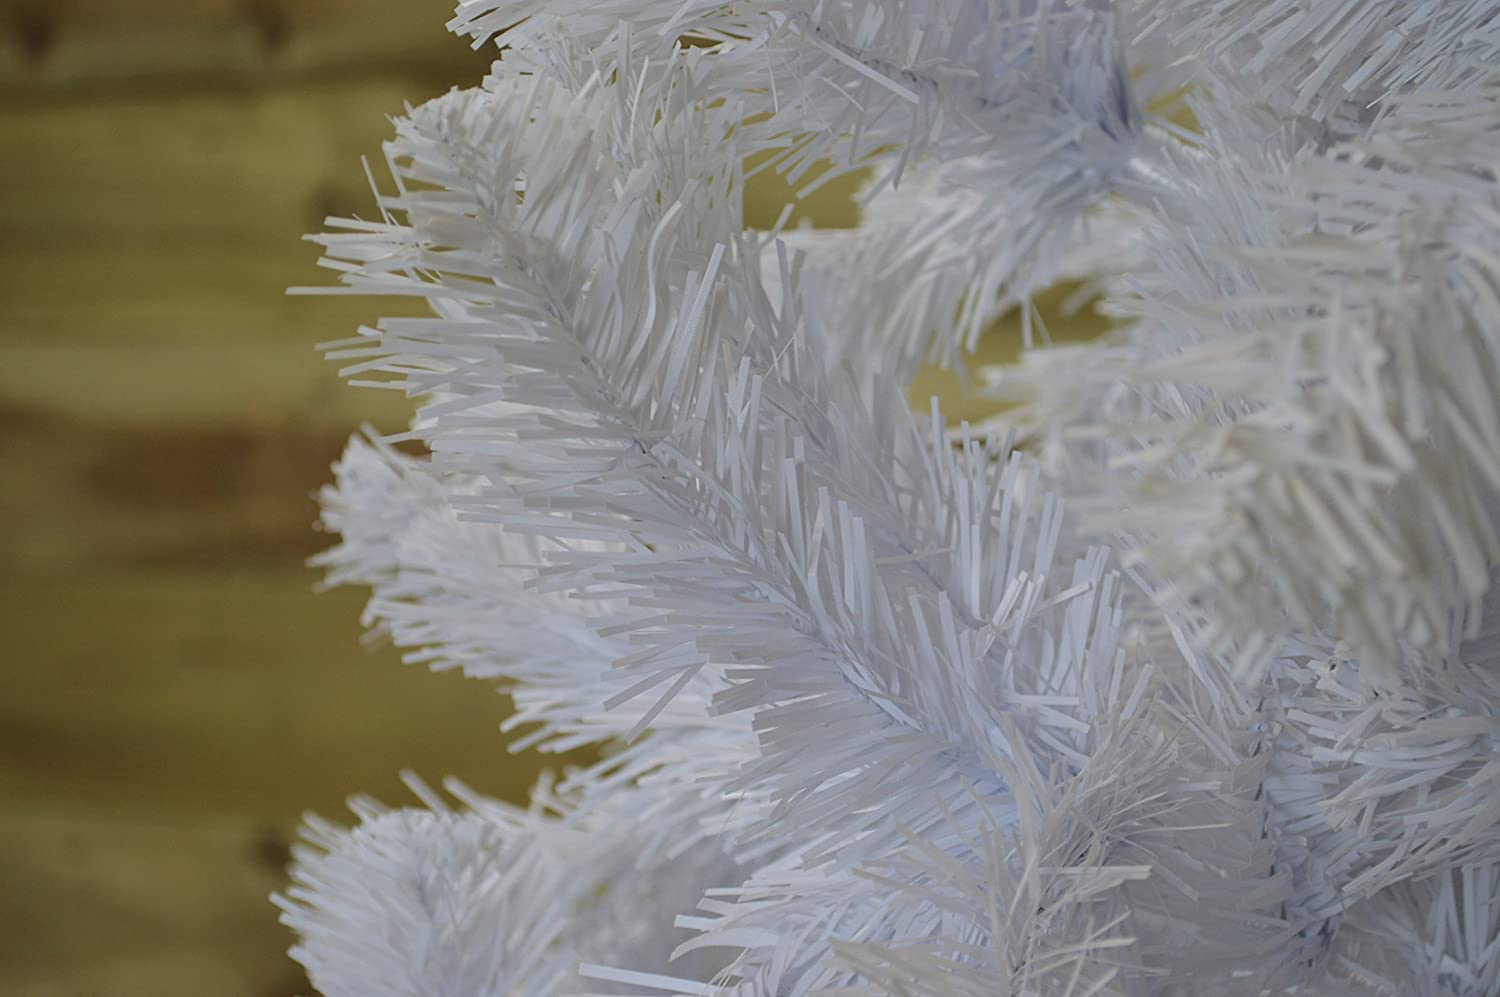 7ft 210cm Imperial Pine Christmas Tree in White by Everlands